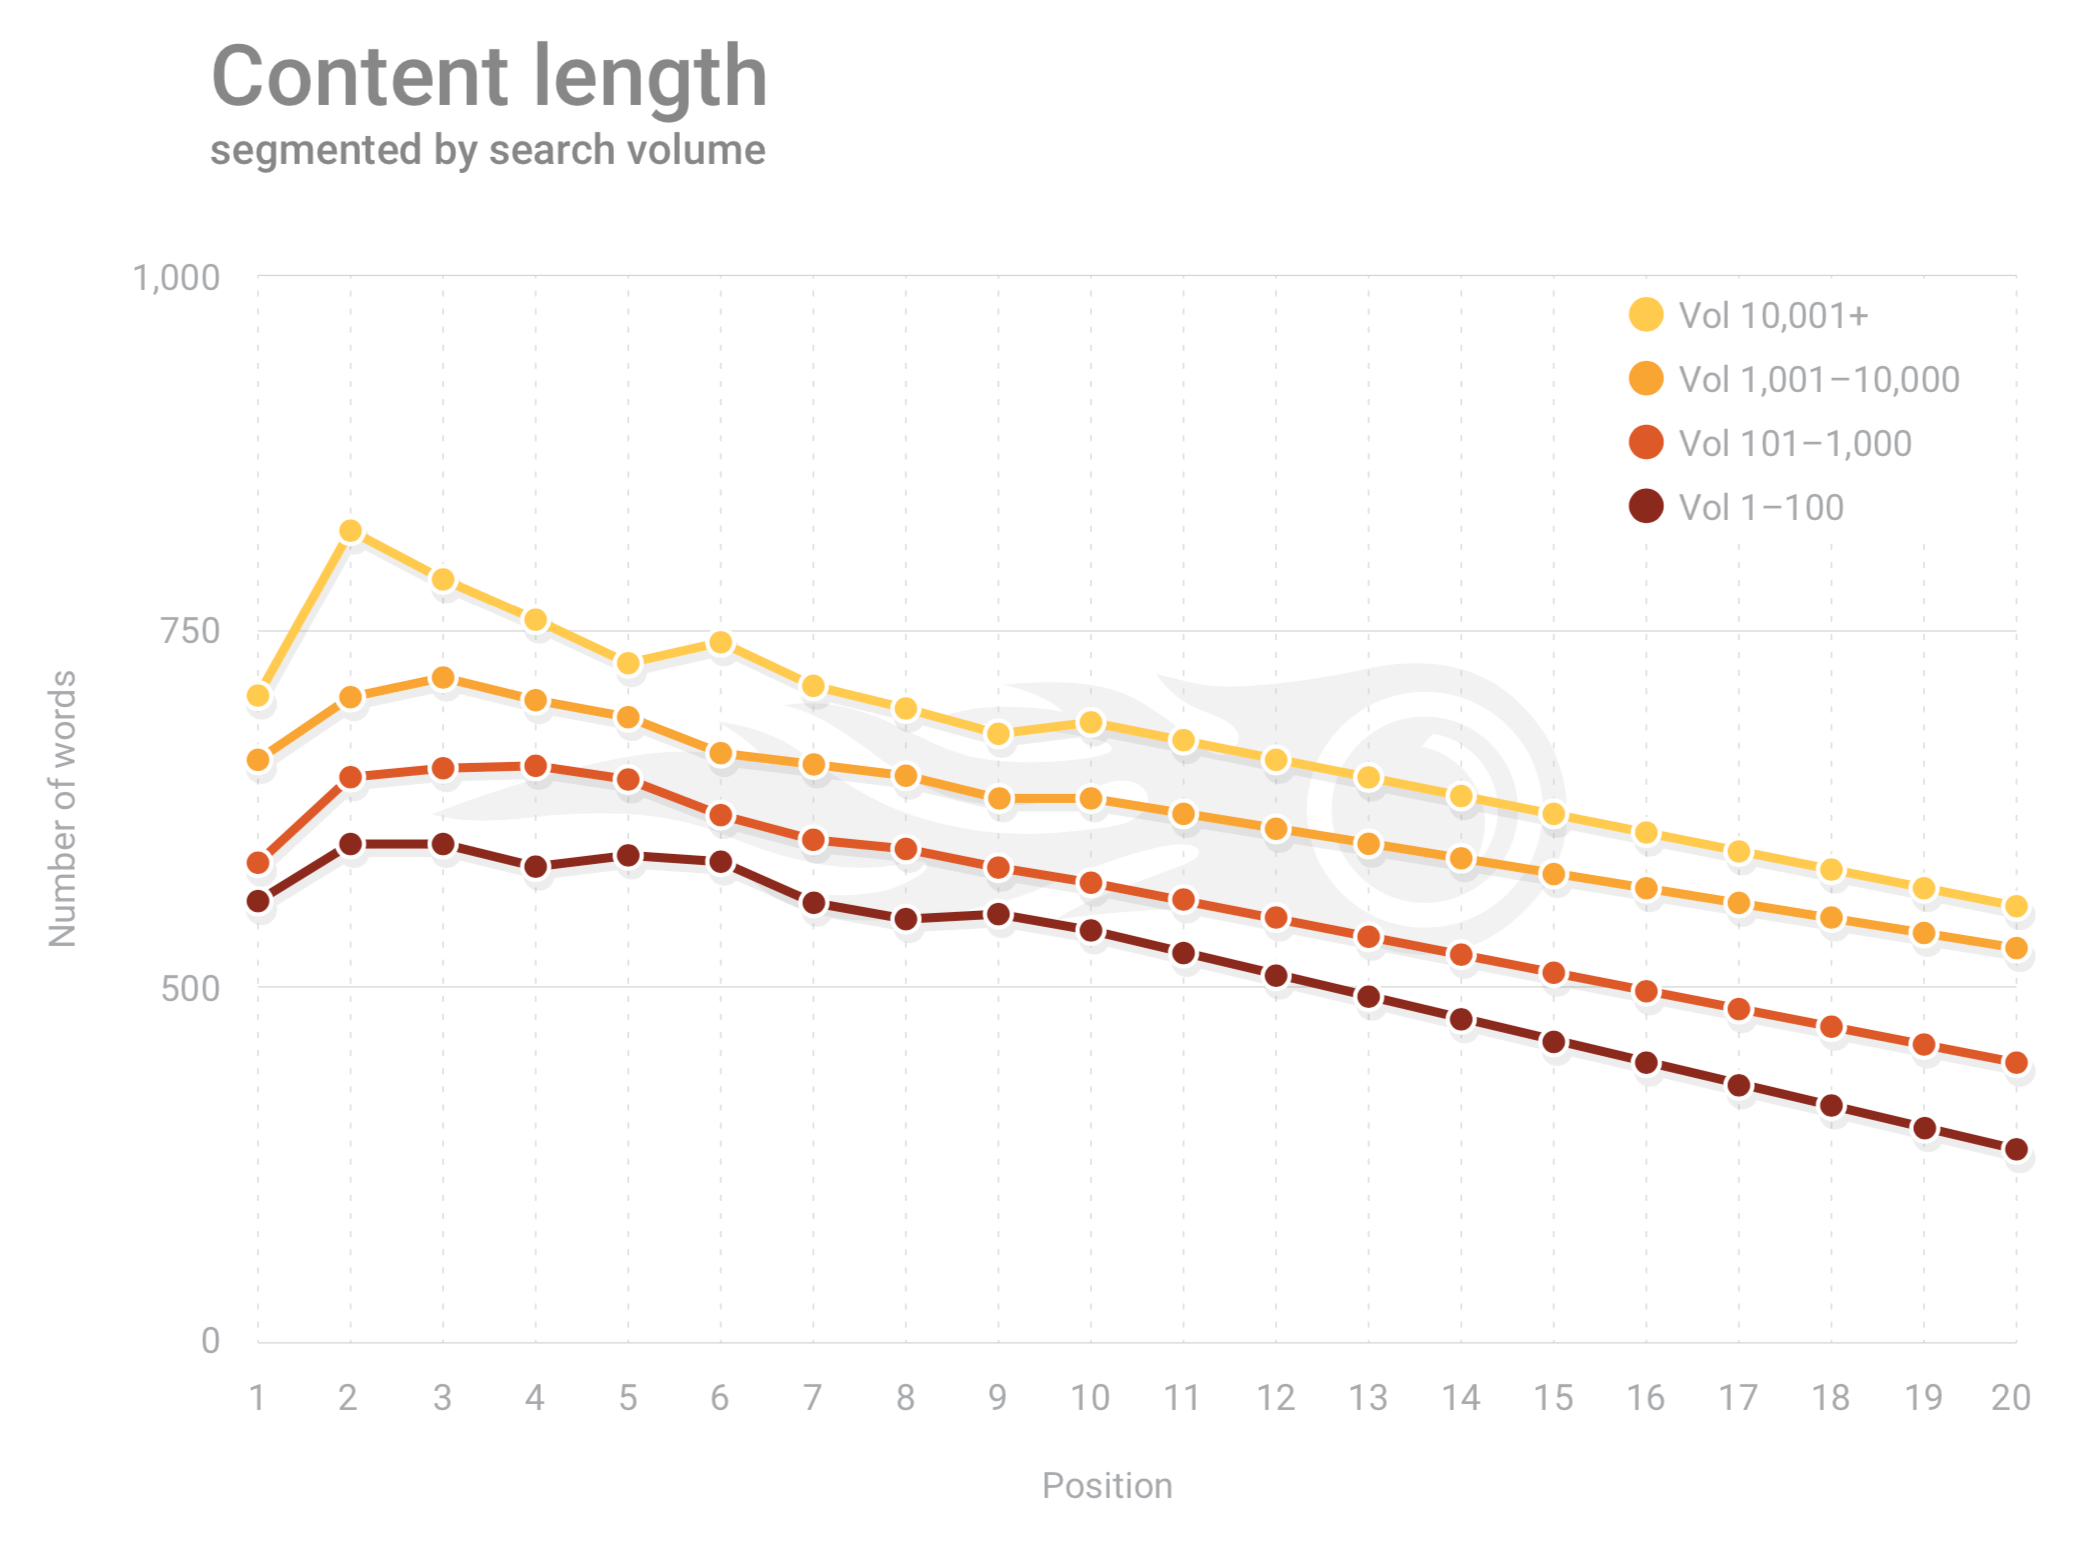 SEMRUSH Content Length Study